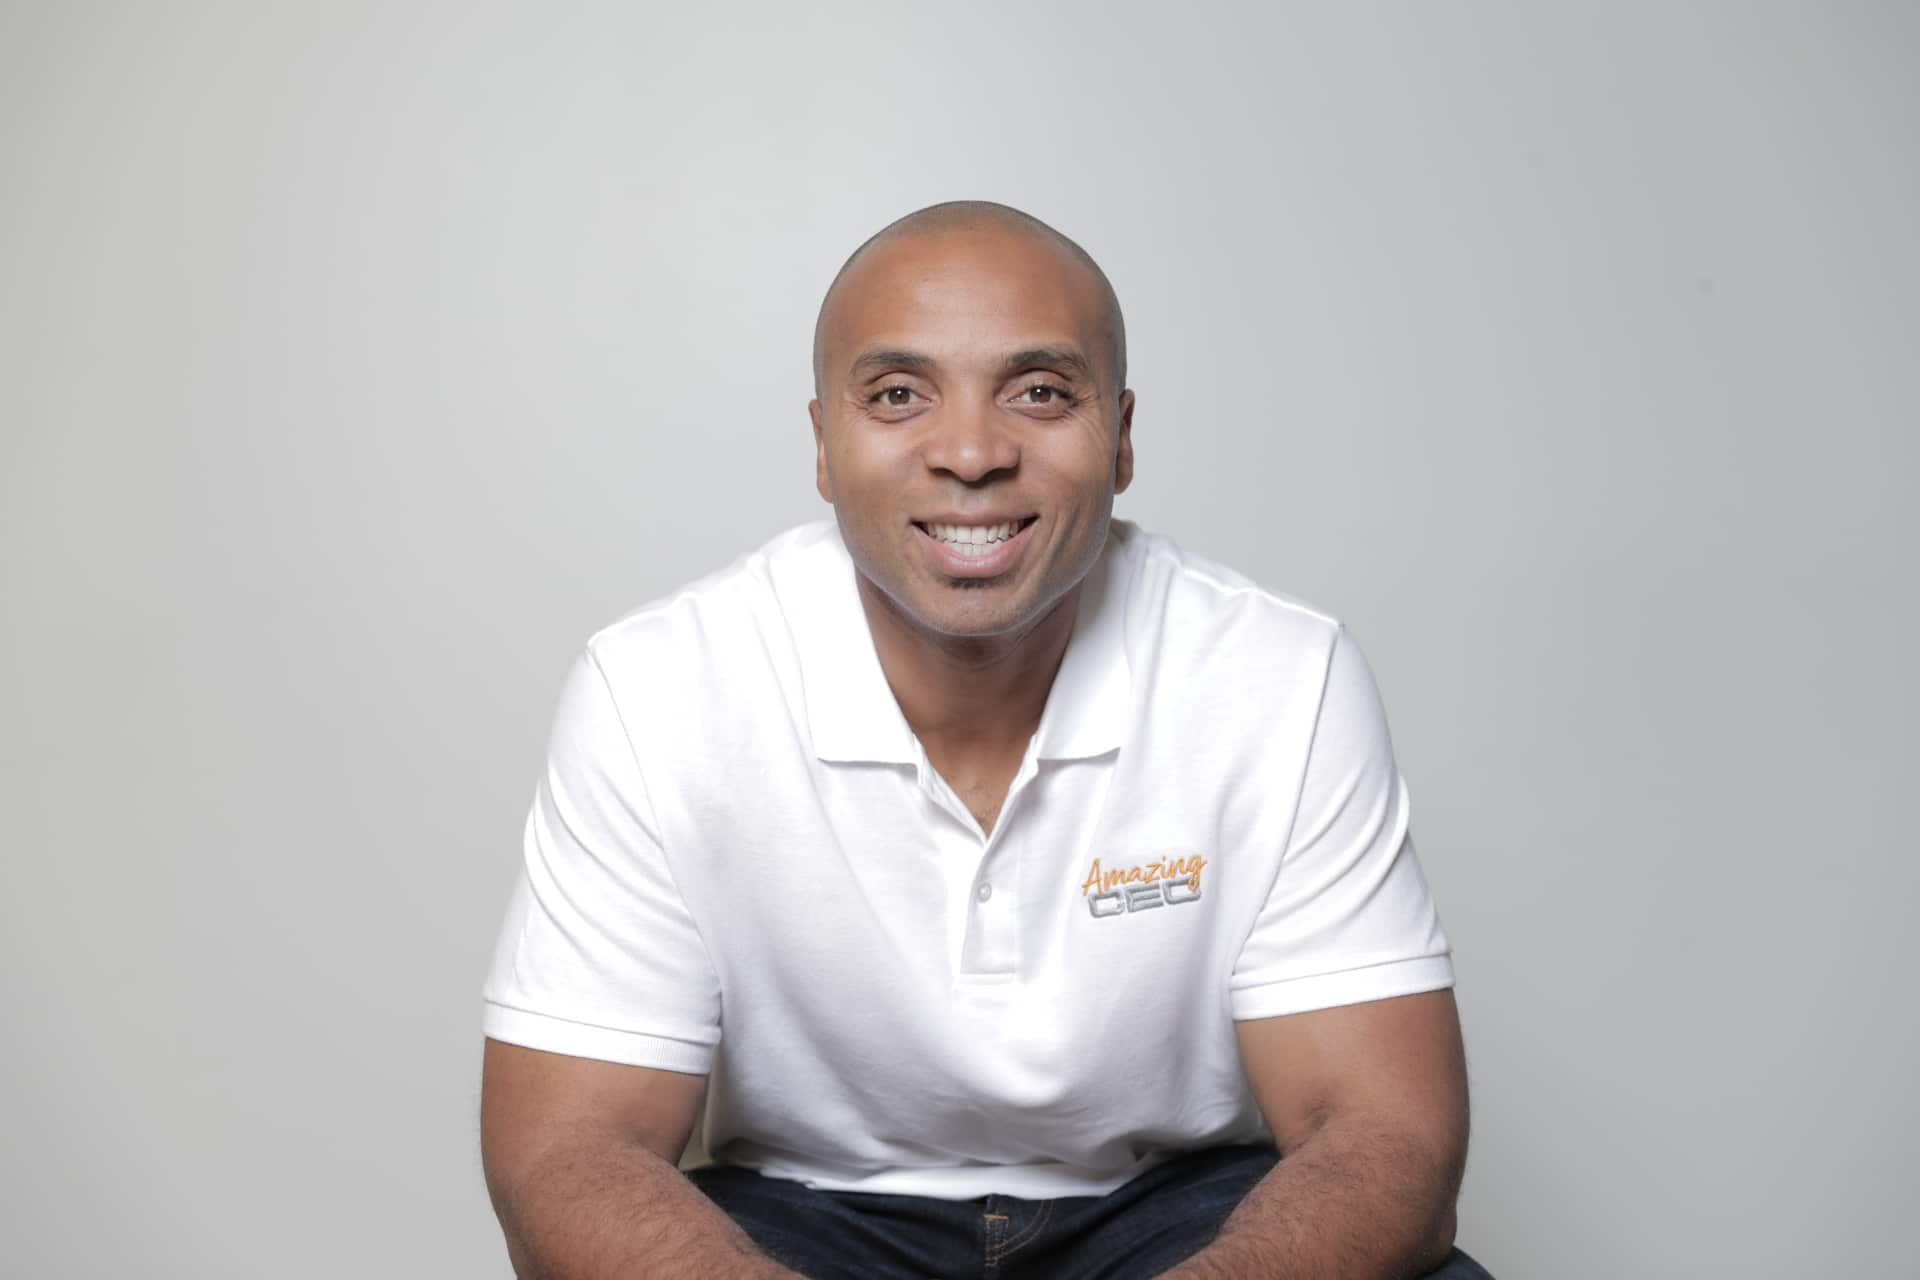 022: Finding Fulfillment in Work and Life with Anthony Flynn